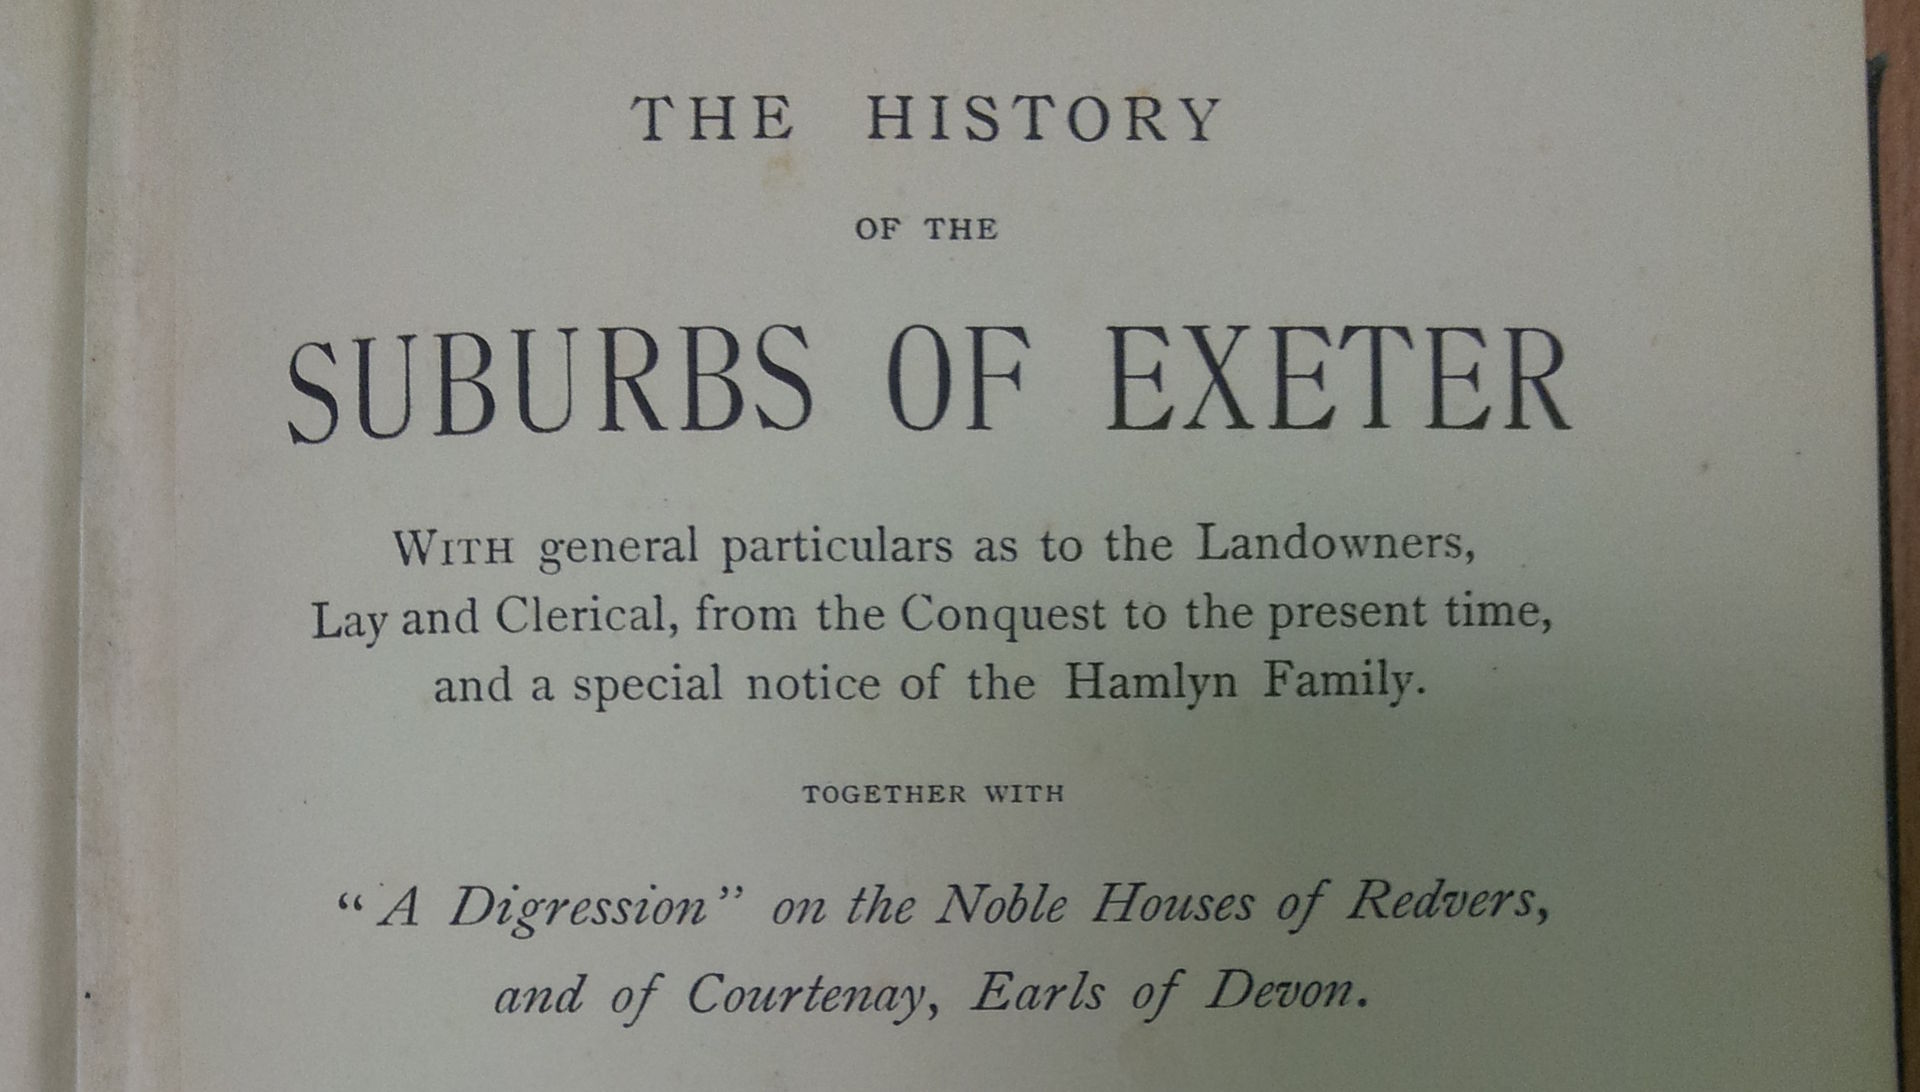 Worthy - The History of the Suburbs of Exeter